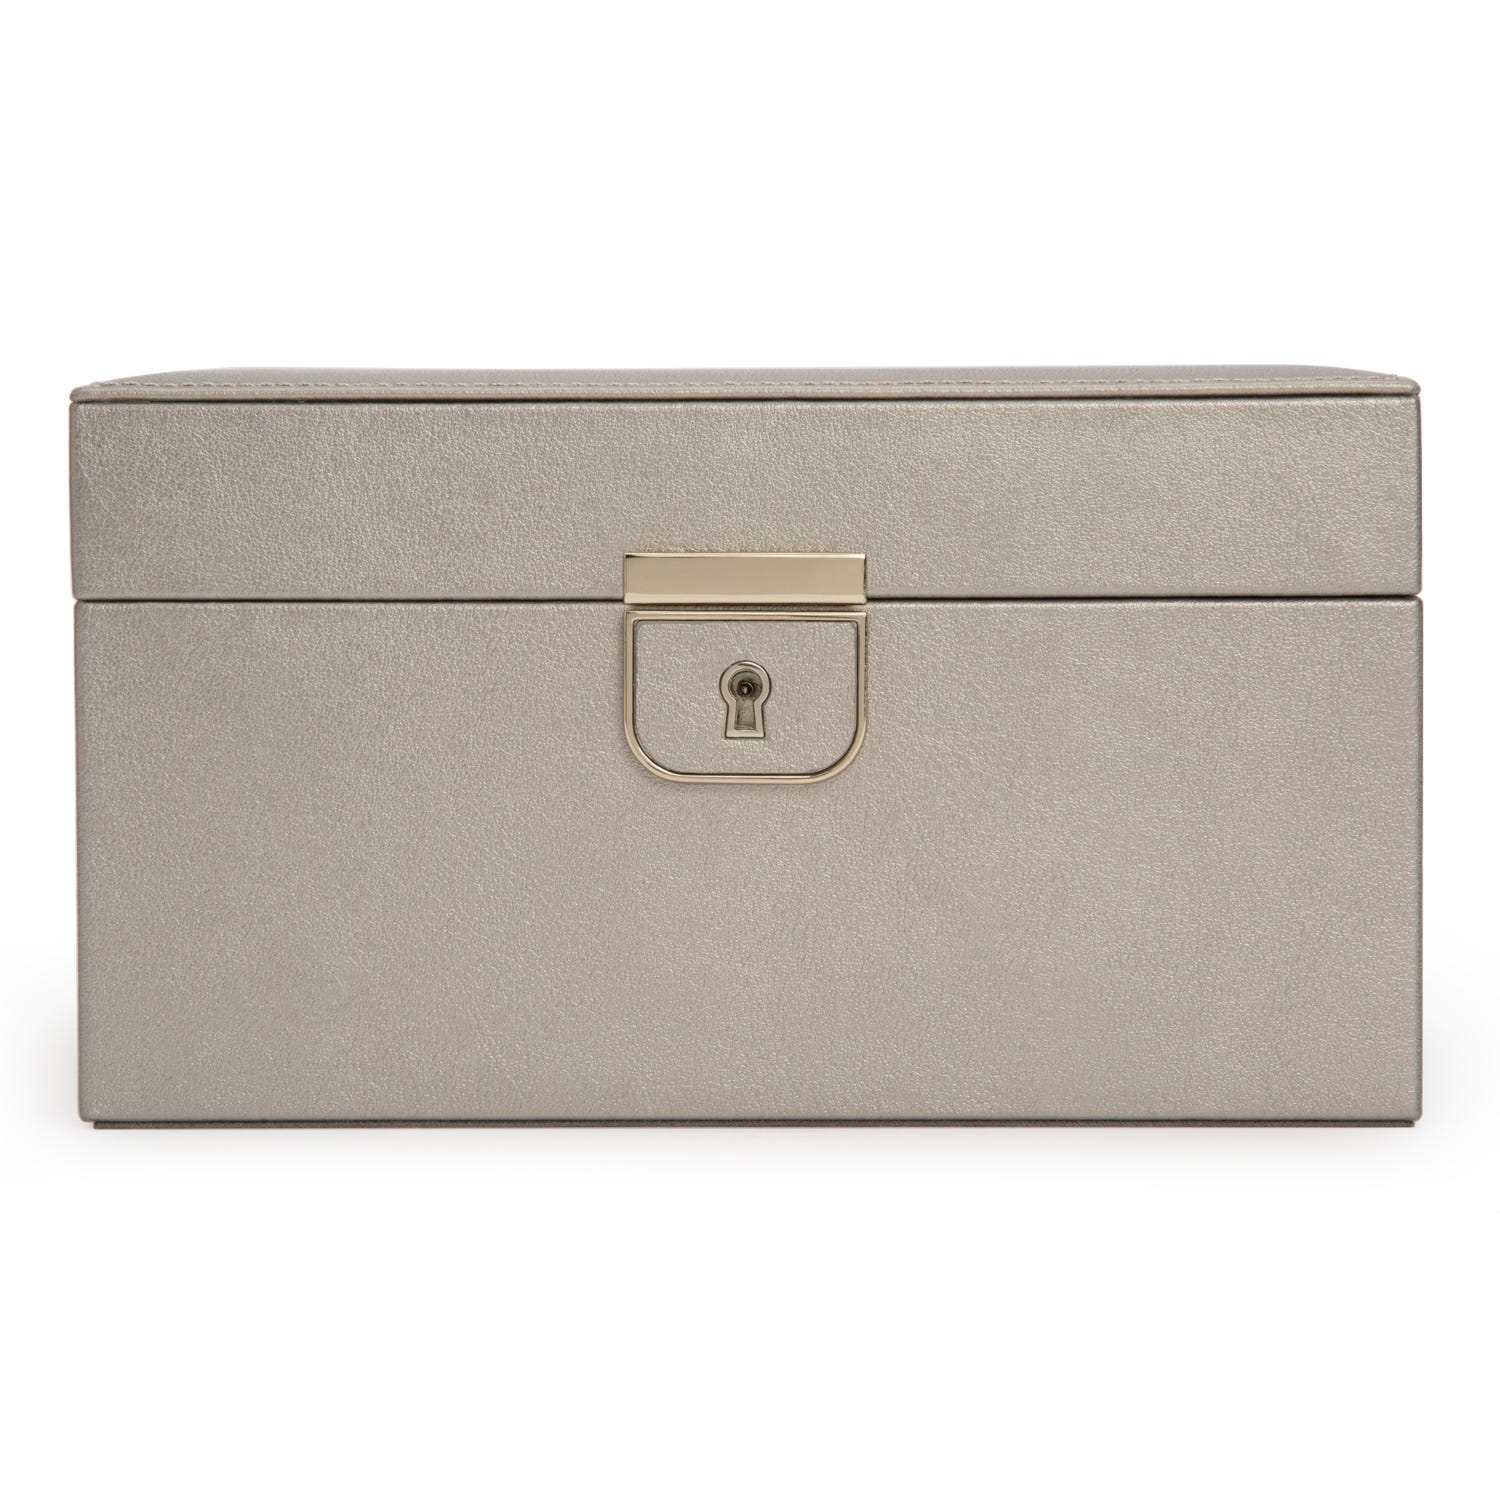 Taupe Leather Palermo Small Jewelry Box